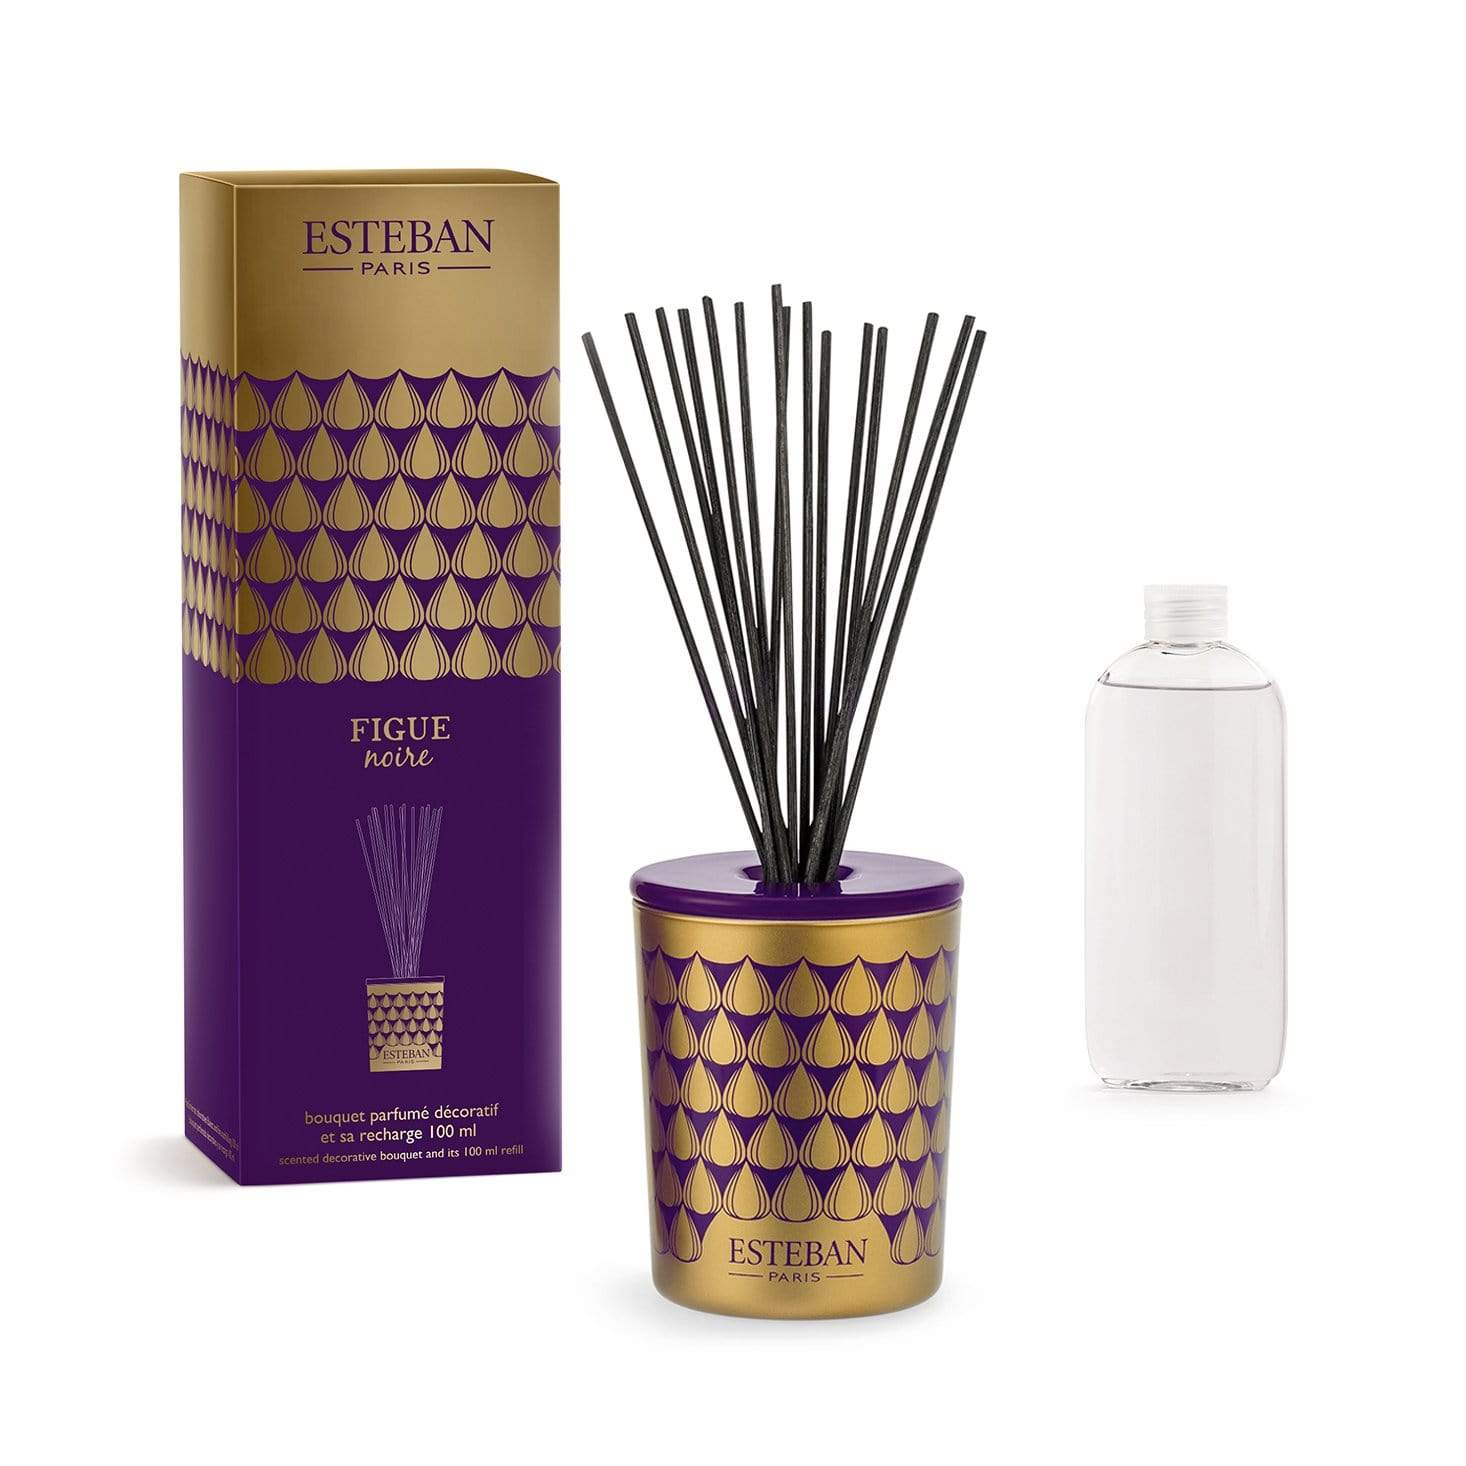 Esteban Fig Decorative Diffuser